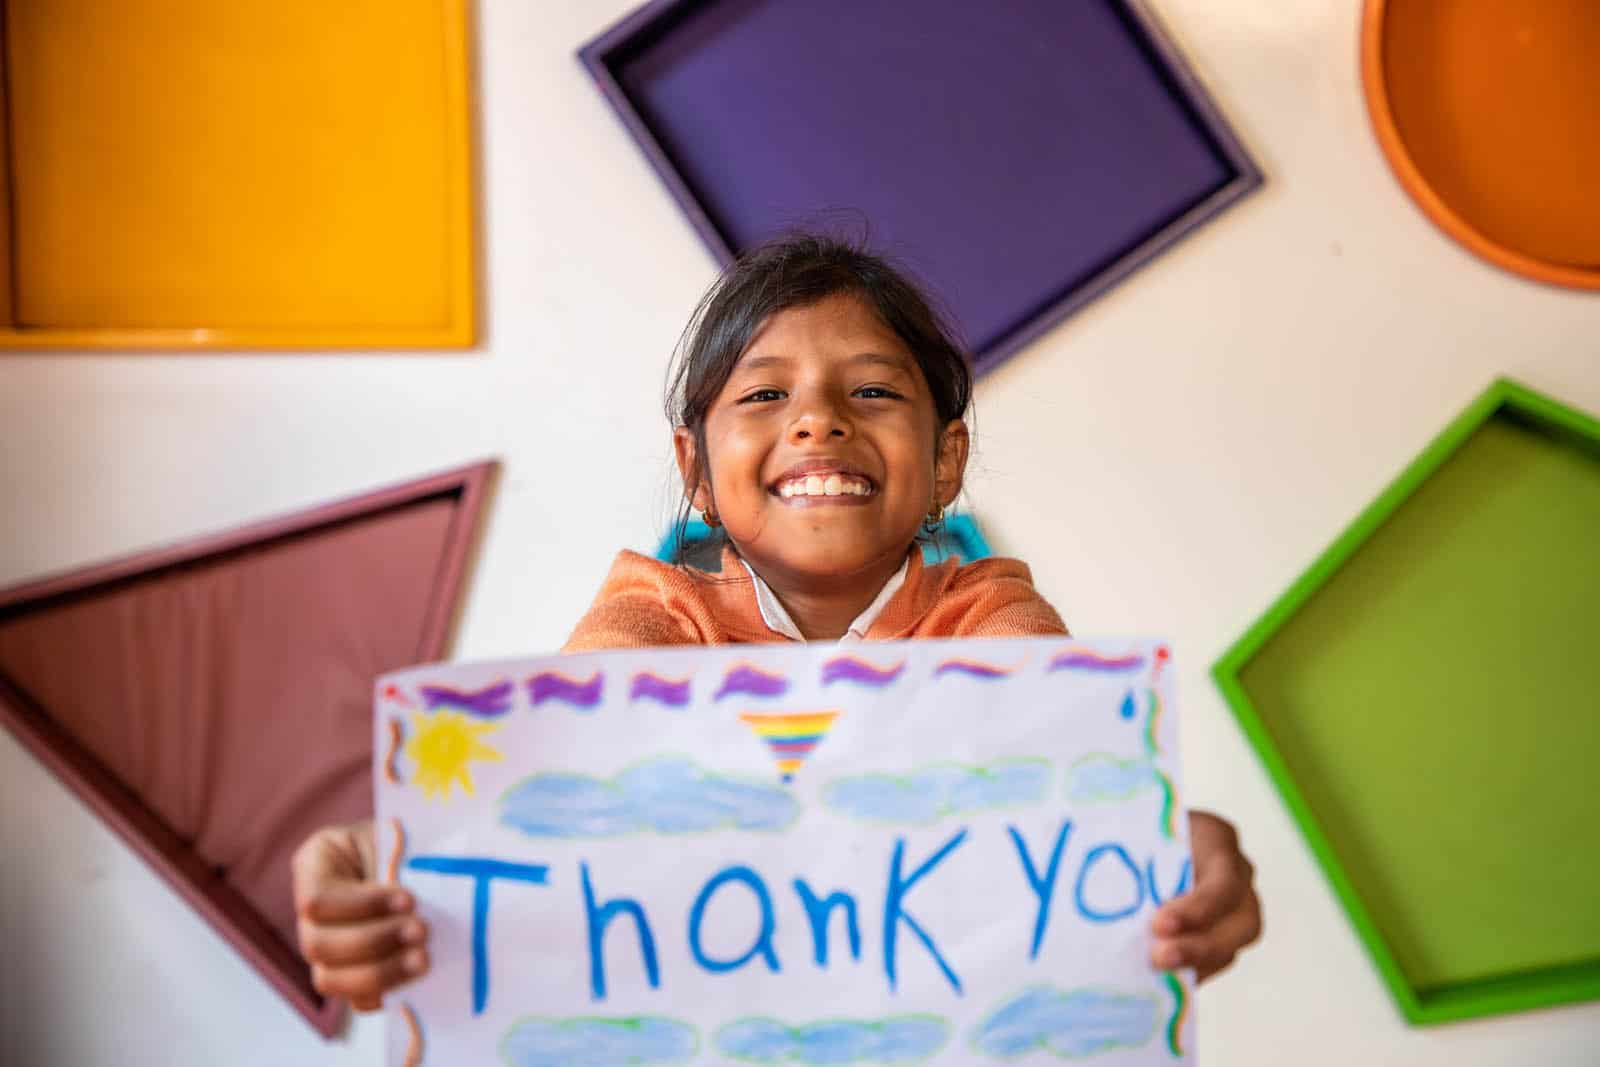 The Top 5 Reasons These Kids Are Grateful Will Make You Grateful Too